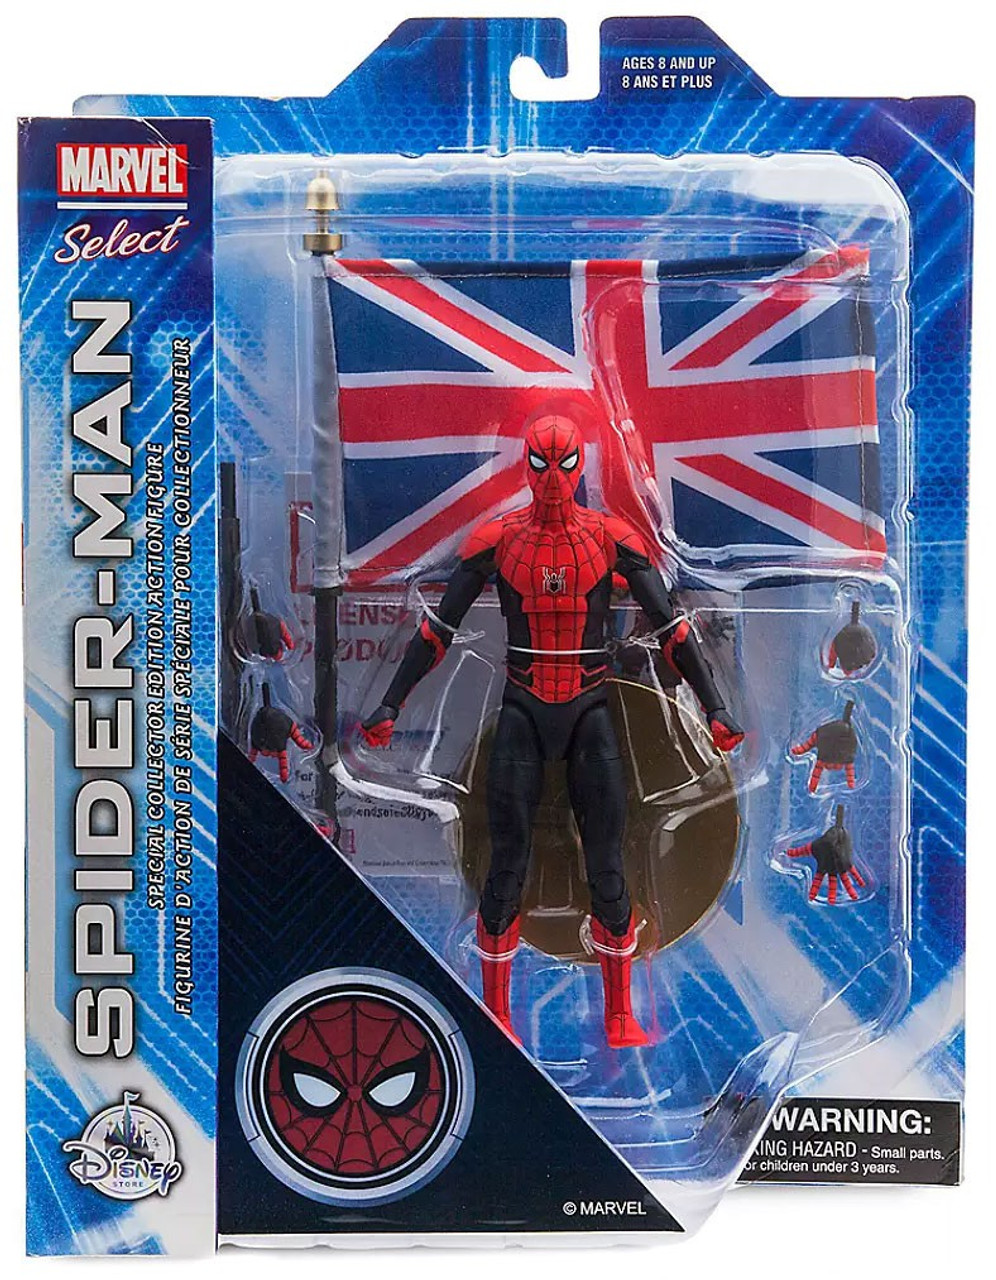 Classic Spider-Man Marvel Select Action Figure Diamond SPIDER-MAN